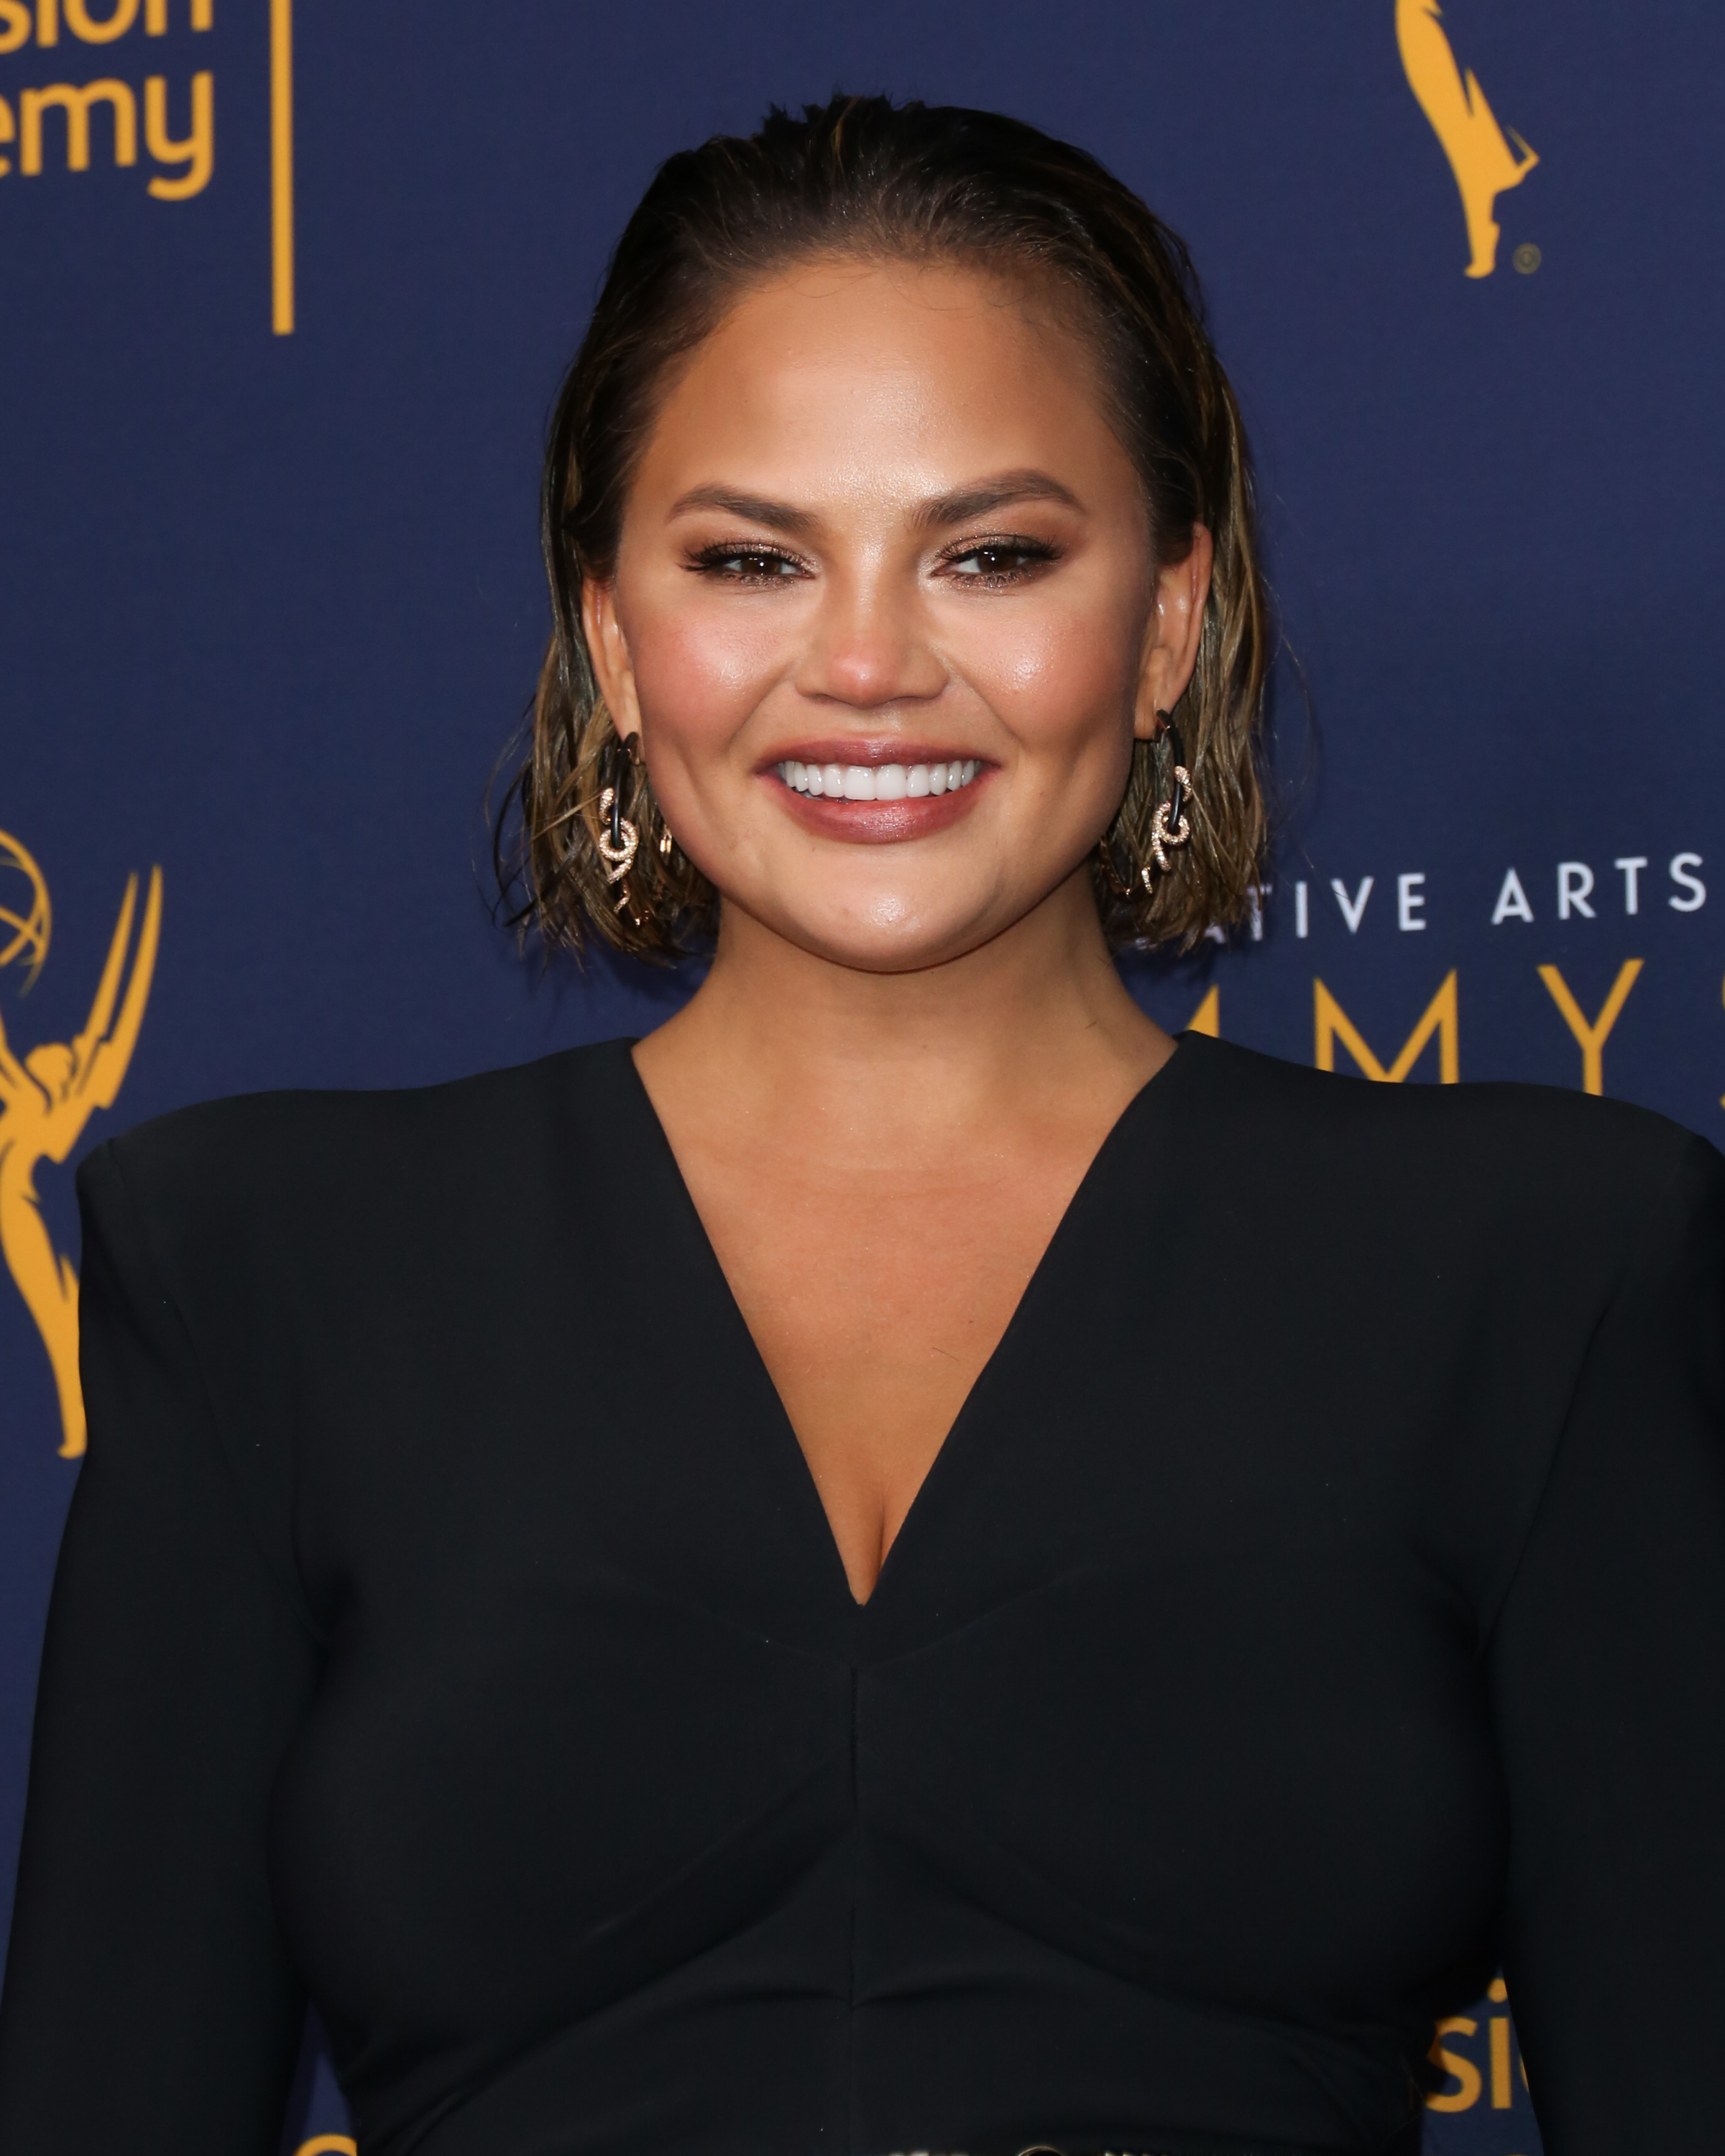 """<p><a href=""""https://style.nine.com.au/2018/09/06/21/05/gq-awards-2018-red-carpet"""" target=""""_blank"""" title=""""ModelChrissy Teigen"""" draggable=""""false"""">Model Chrissy Teigen</a> knows the best accessory to bring to the red carpet is a killer beauty look.</p> <p>Earlier this week, the wife of John Legend appeared at the Creative Arts Emmys in Los Angeles, where she looked every inch the bombshell.</p> <p> Instead of opting for the typical awards show look of a red lip and smokey eye, the mother-of-two served a lesson in effortless beauty, with glowing skin, a slicked back 'do, highlighted cheeks and the perfect pink nude lip.</p> <p>Teigen, 32, couldn't the smile off her face all night, and as much as we would like to think it was because her husband became the first African-American to receive an Emmy, Oscar, Golden Globe and Tony, we think it's because she nailed it in the make-up stakes.</p> <p>With the<a href=""""https://style.nine.com.au/2017/09/18/08/21/style_emmy-awards-2017-red-carpet"""" target=""""_blank"""" title="""" 2018 Primetime Emmys """" draggable=""""false""""> 2018 Primetime Emmys </a>just around the corner, we've taken a leaf out of Chrissy's beauty book with 10 must-have products that you'll want to apply (and then re-apply again) this Spring.</p>"""